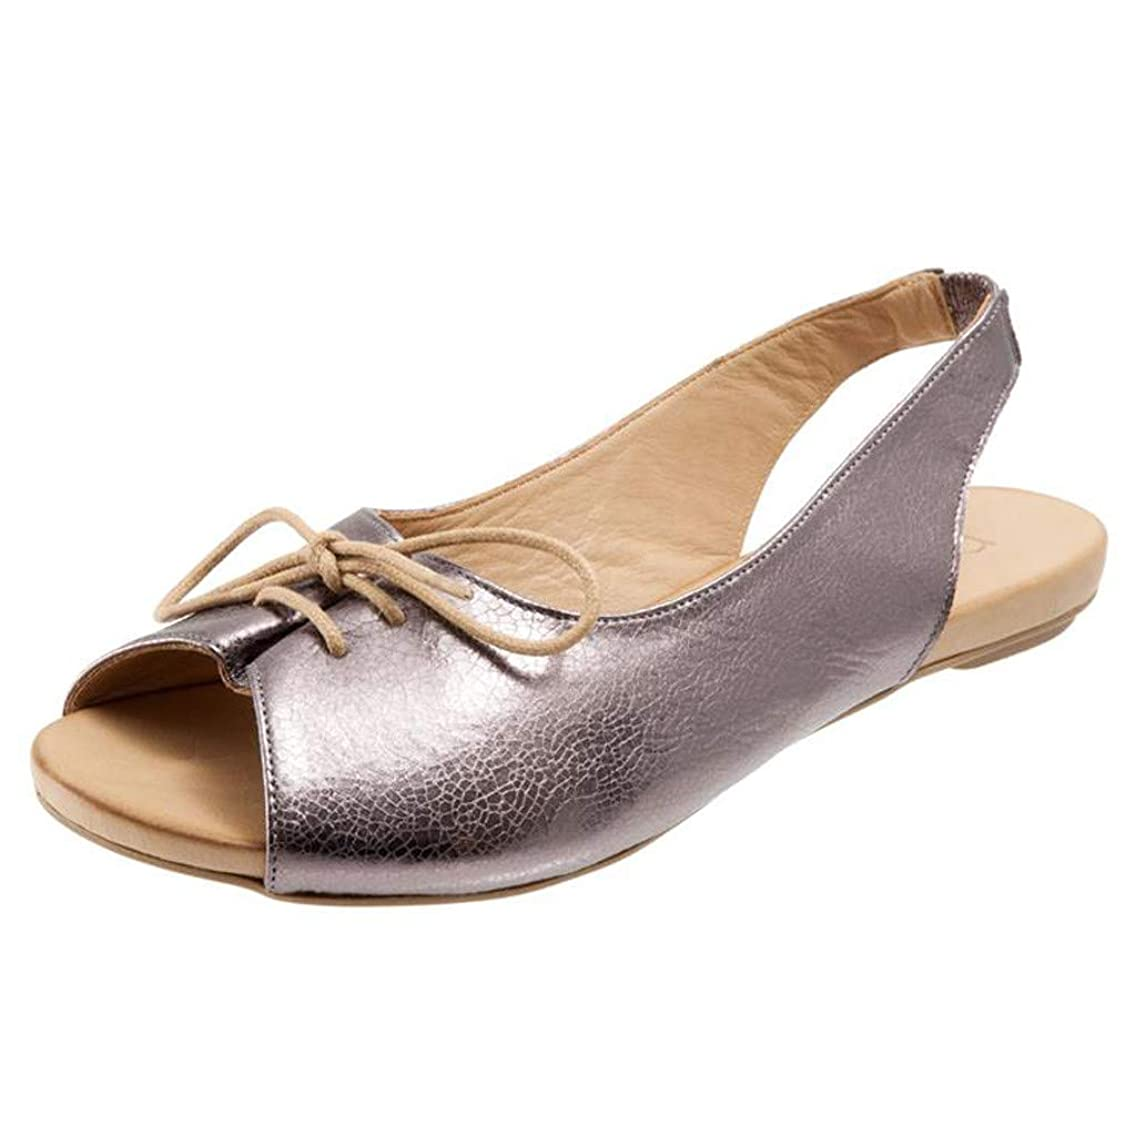 Slip On Sandals for Women,SMALLE??? Women's Casual Summer Peek Toe Flat Shoes Comfortable Lace Up Ankle Beach Shoes